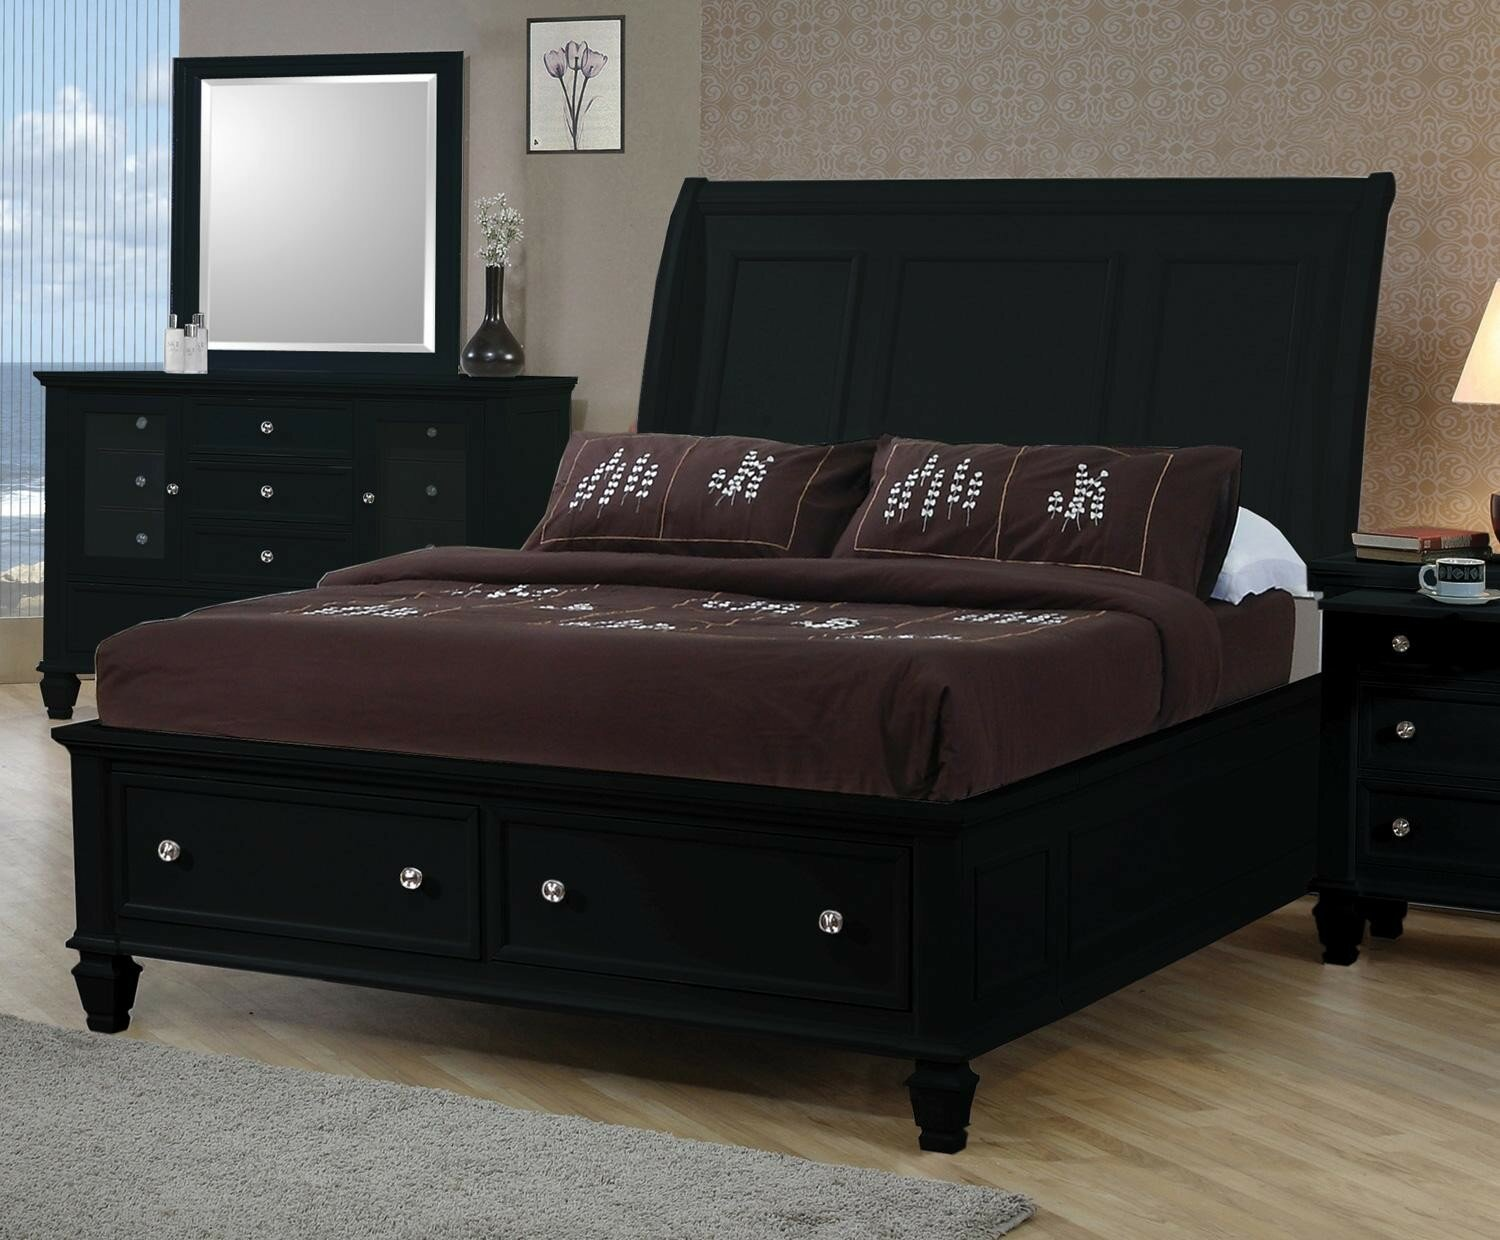 Craigslist Beds for Sale | Craigslist Bedroom Sets | Sectional Sofa Craigslist